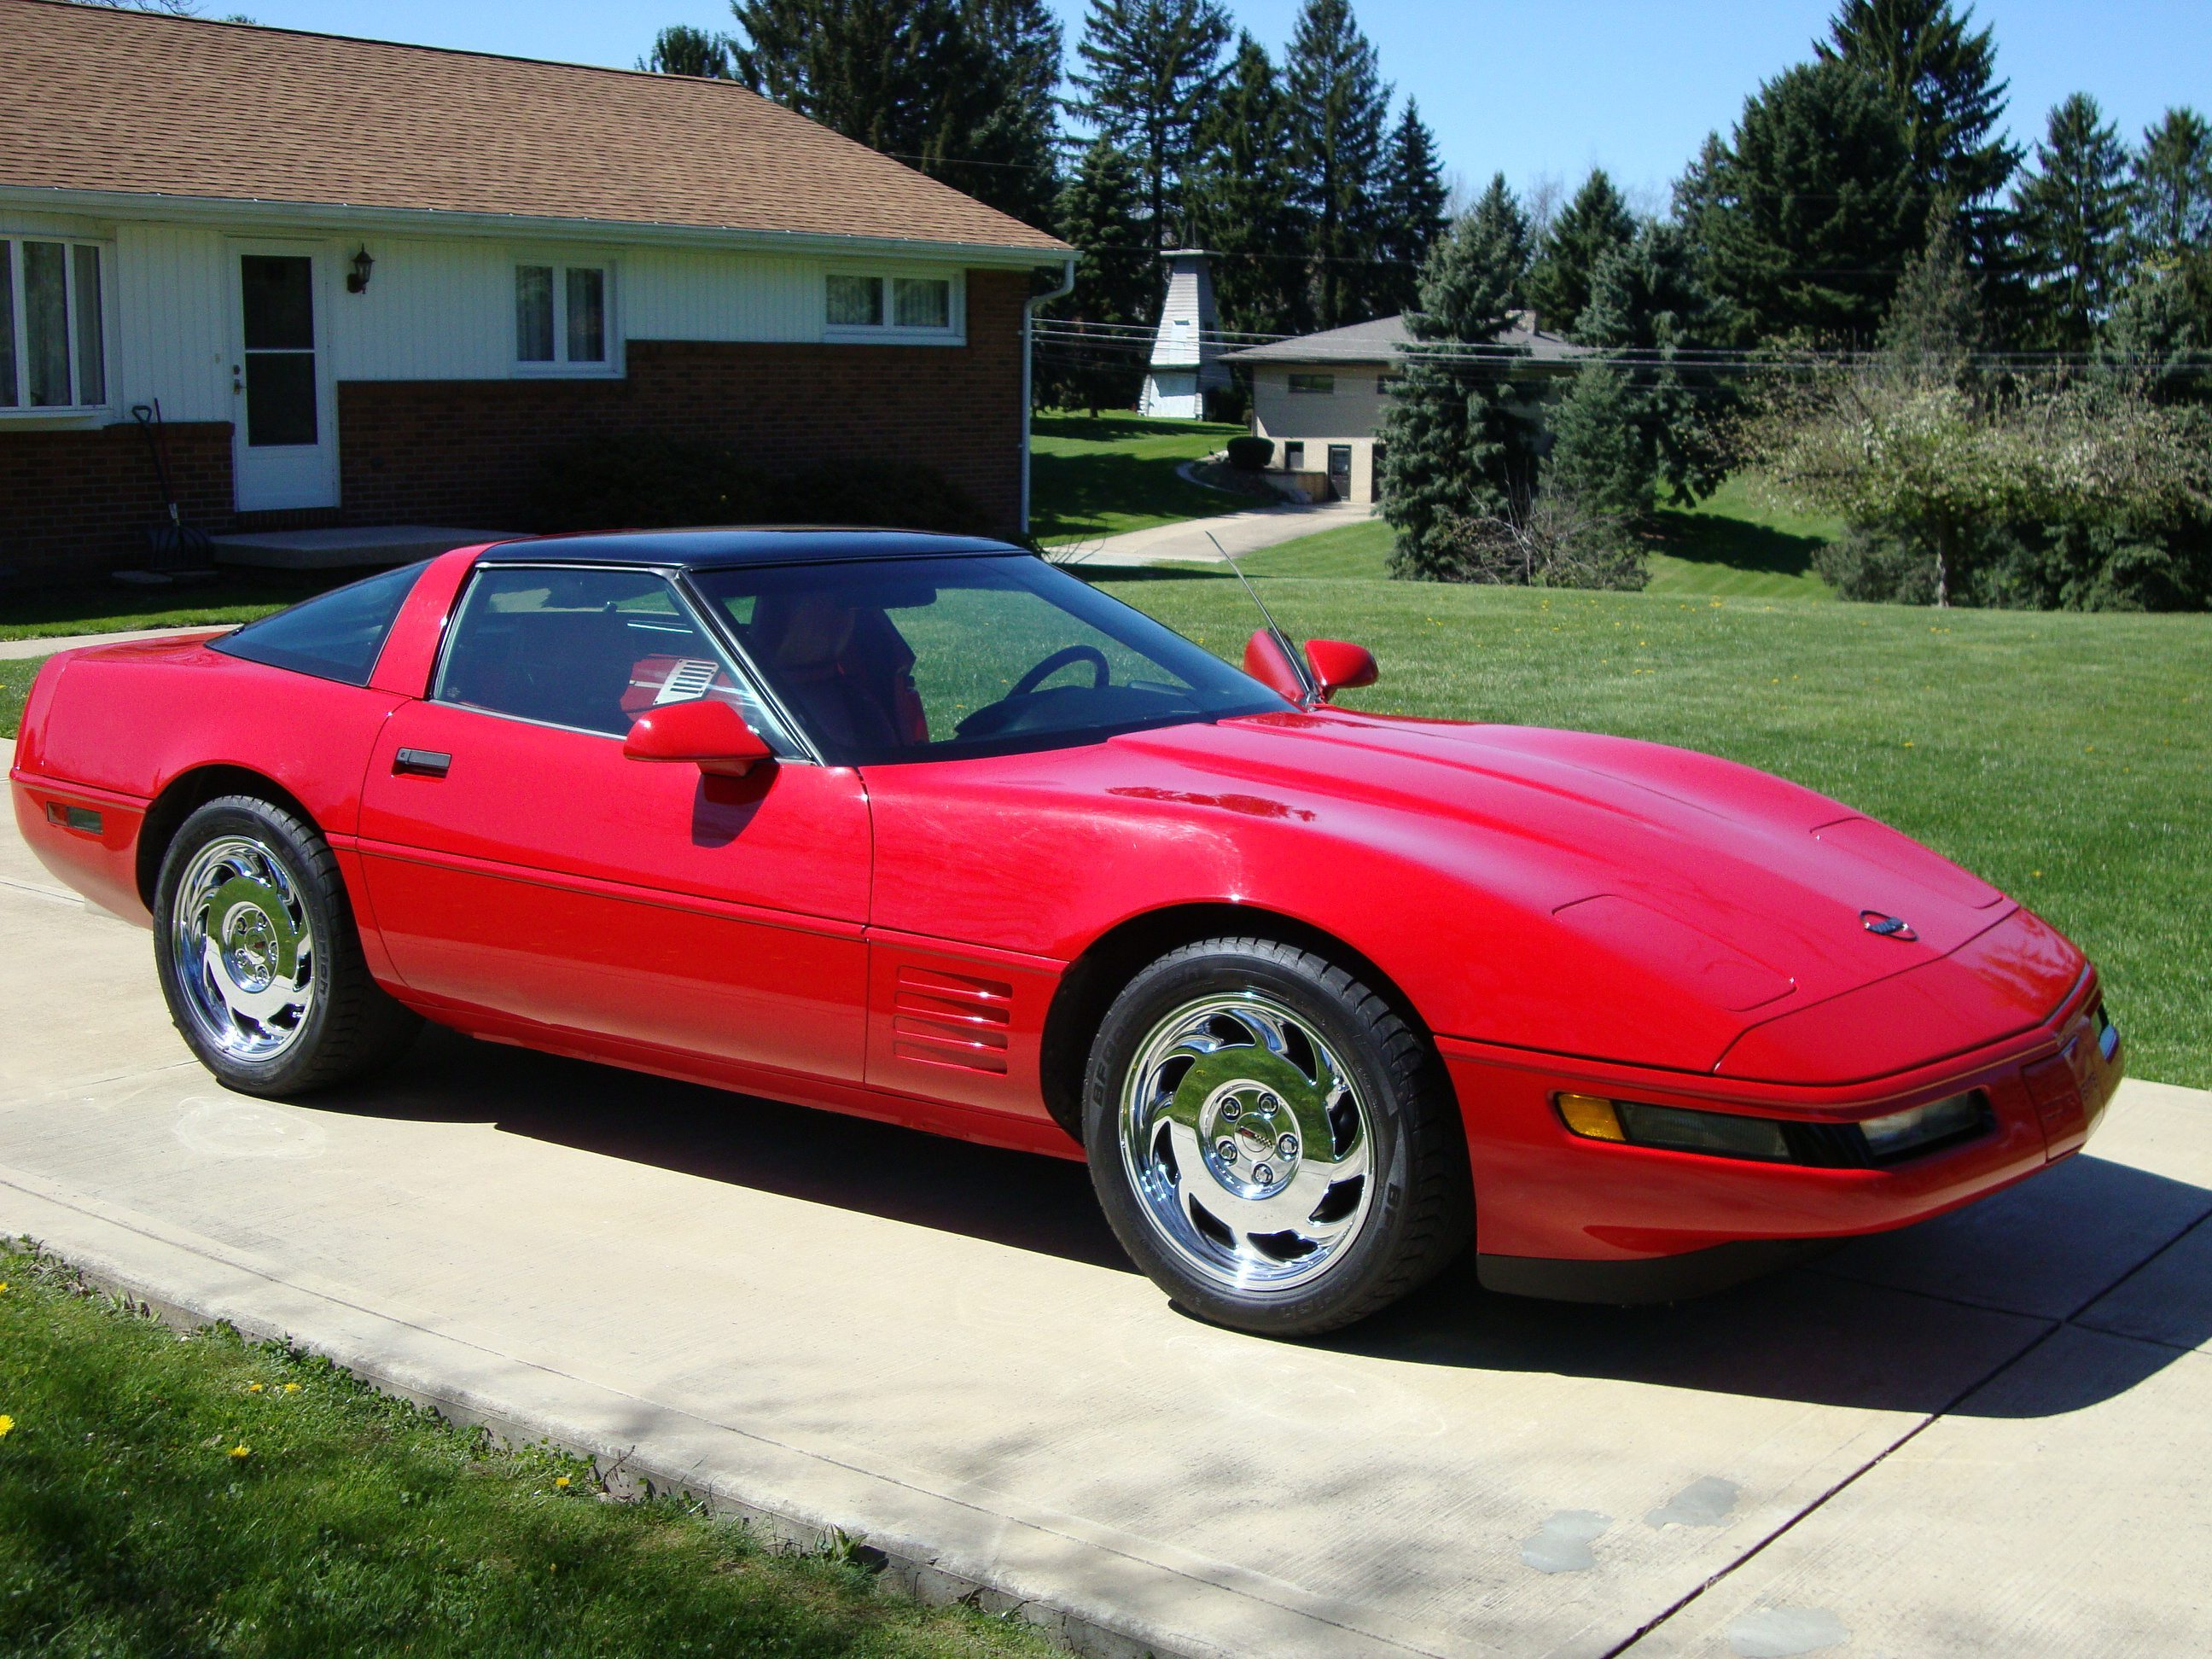 1992 c4 corvette ultimate guide overview specs vin info performance more. Black Bedroom Furniture Sets. Home Design Ideas